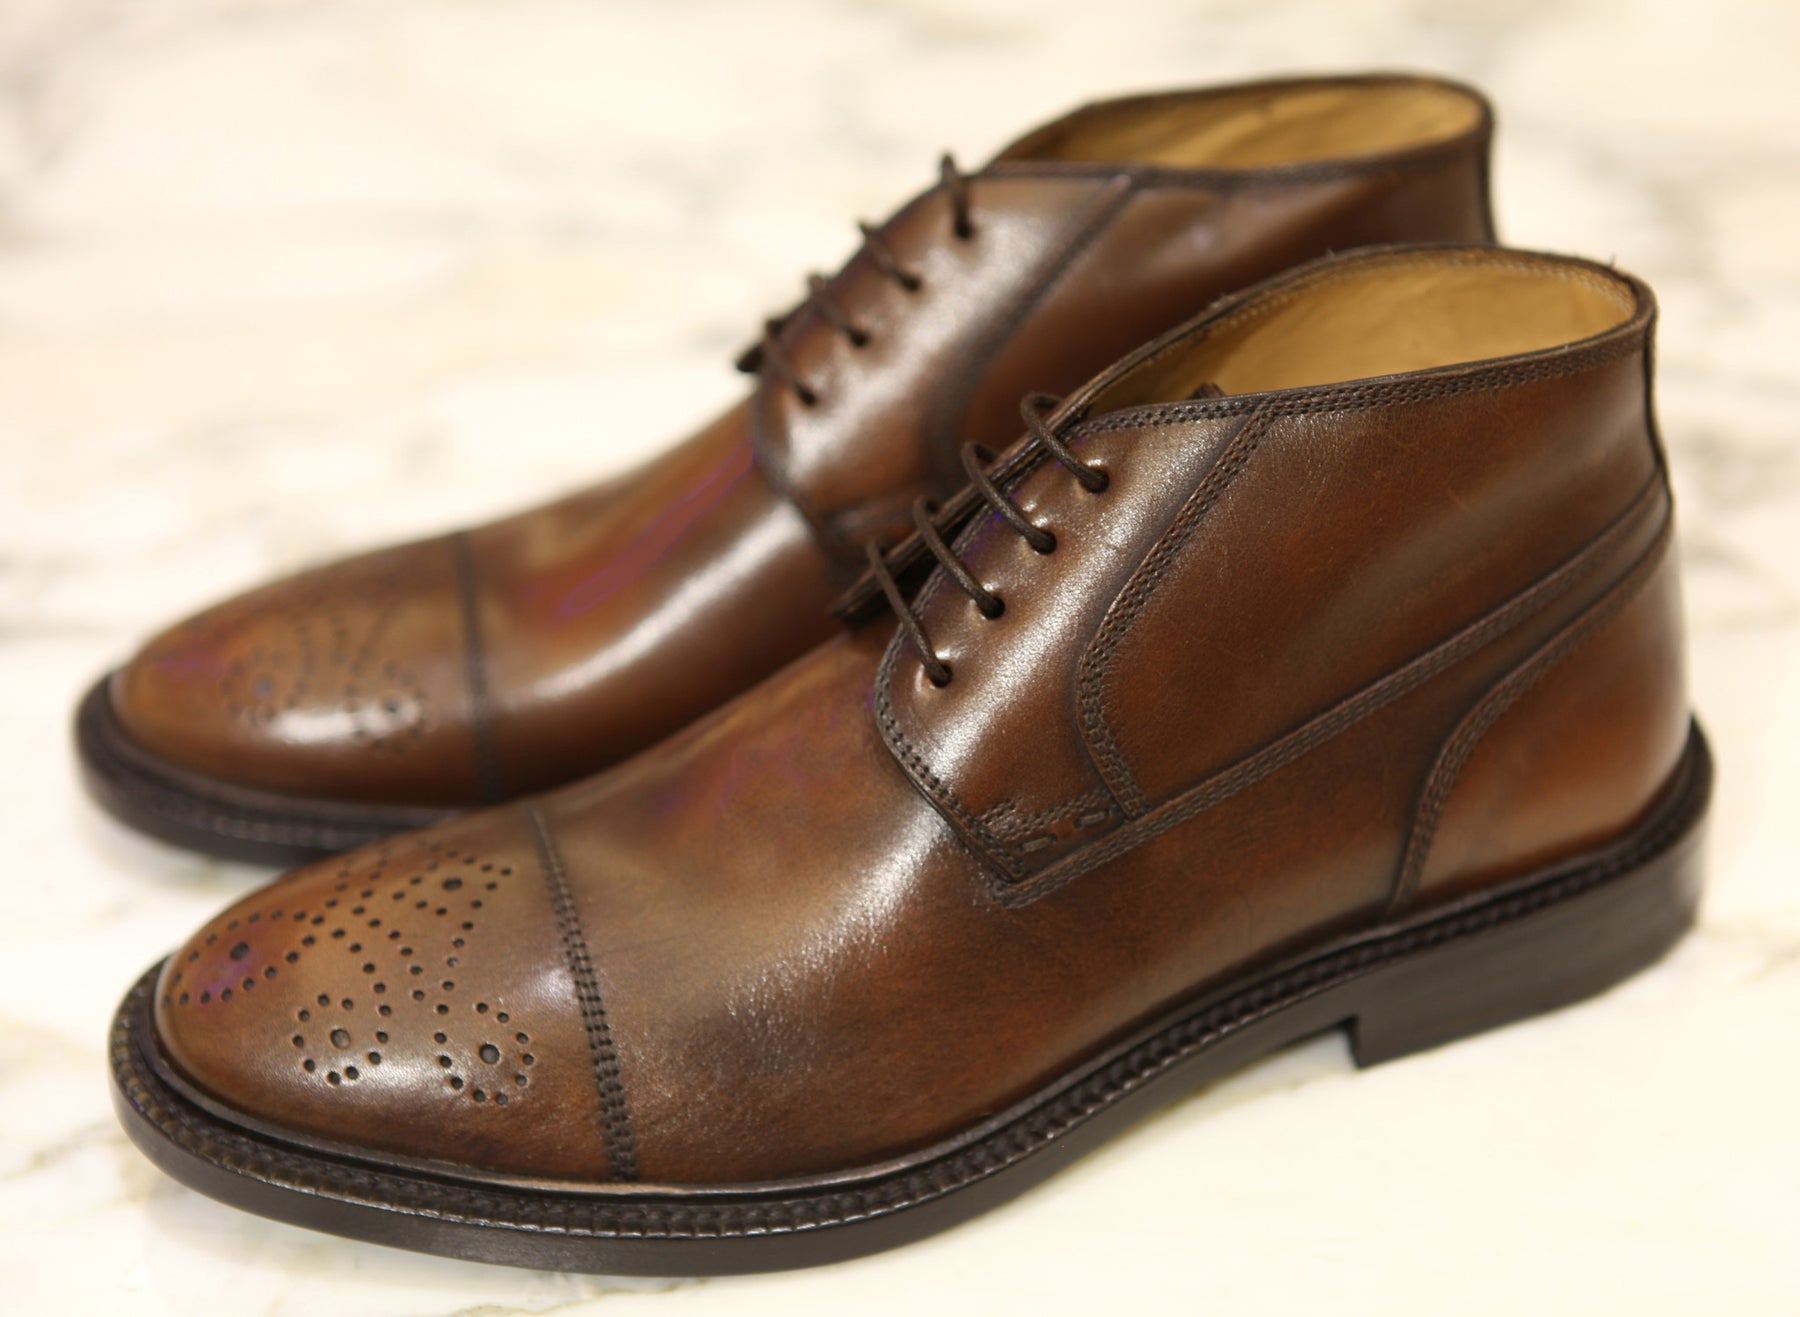 KITON NAPOLI DRESS SHOES (BLACK EDITION)